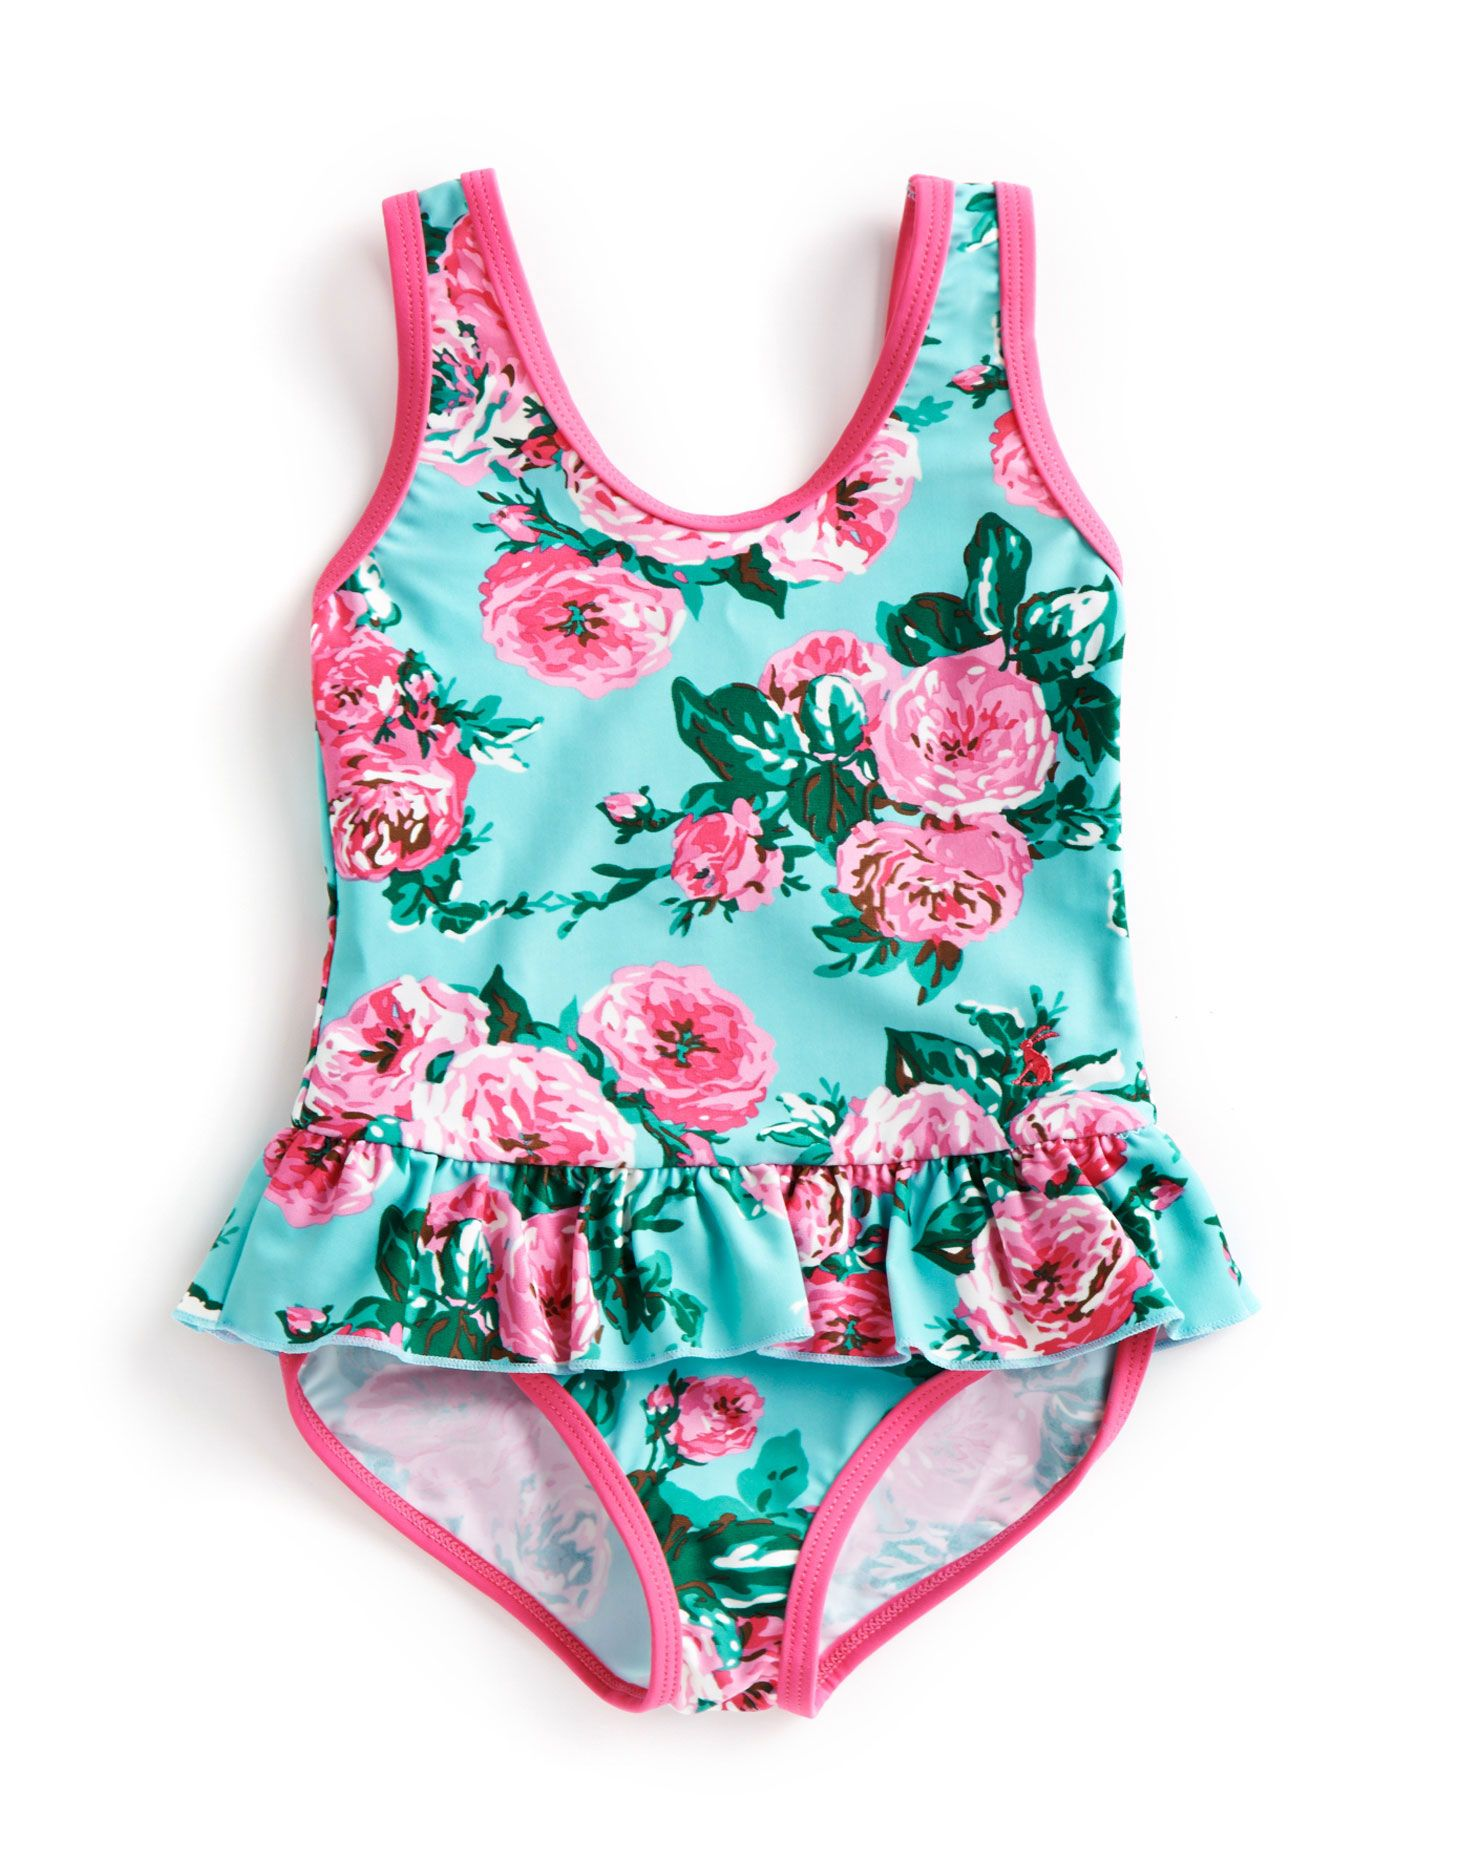 JNR SANDY Girls Swimming Costume-JOULES SS13 | kids | Pinterest ...